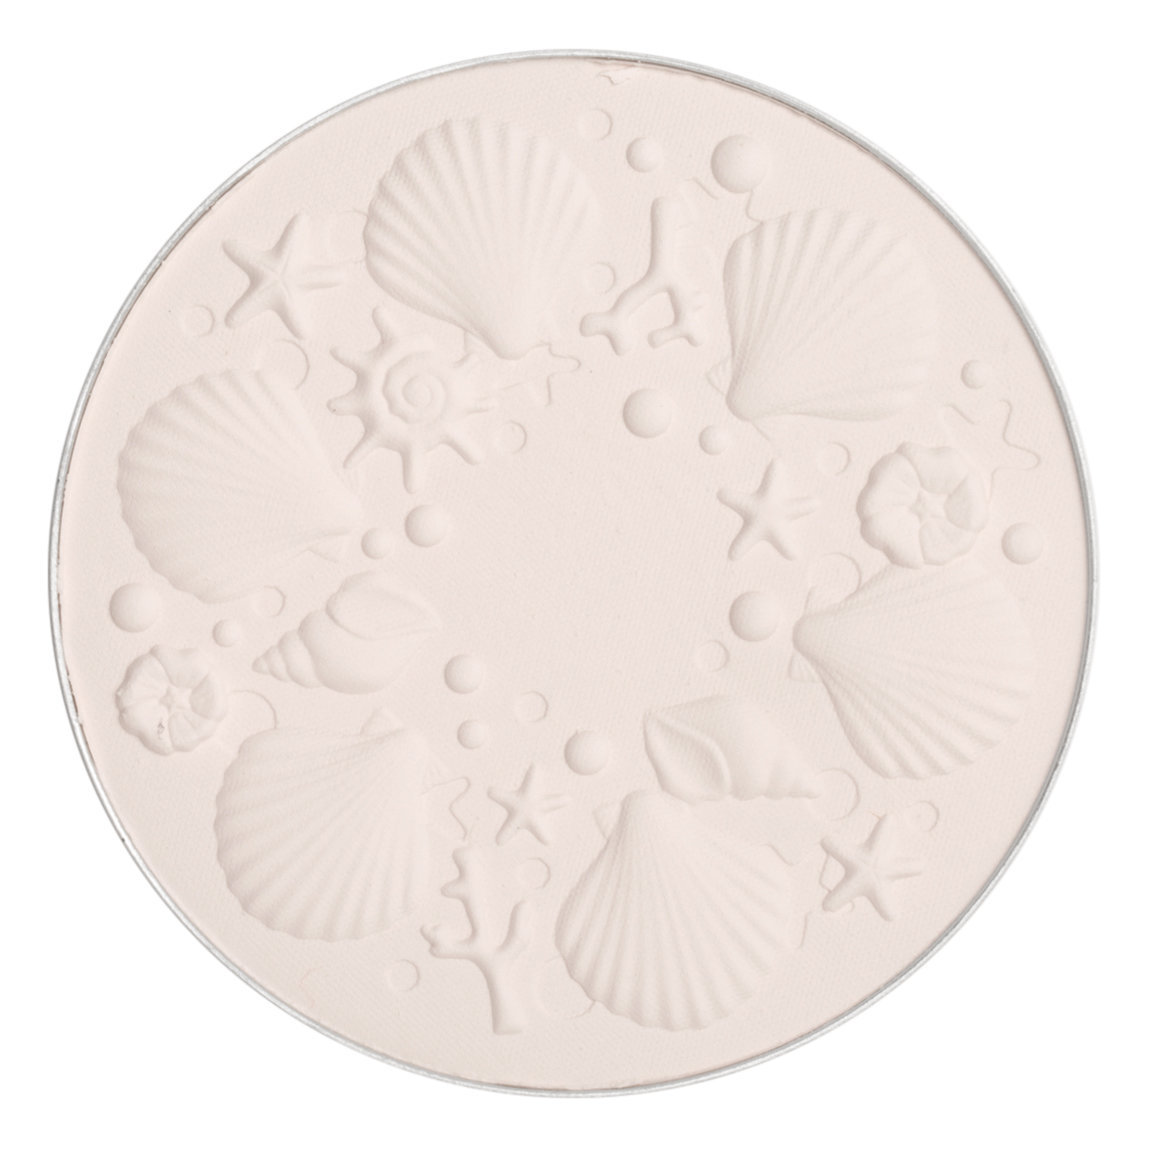 Anna Sui Brightening Face Powder (Refill) product swatch.